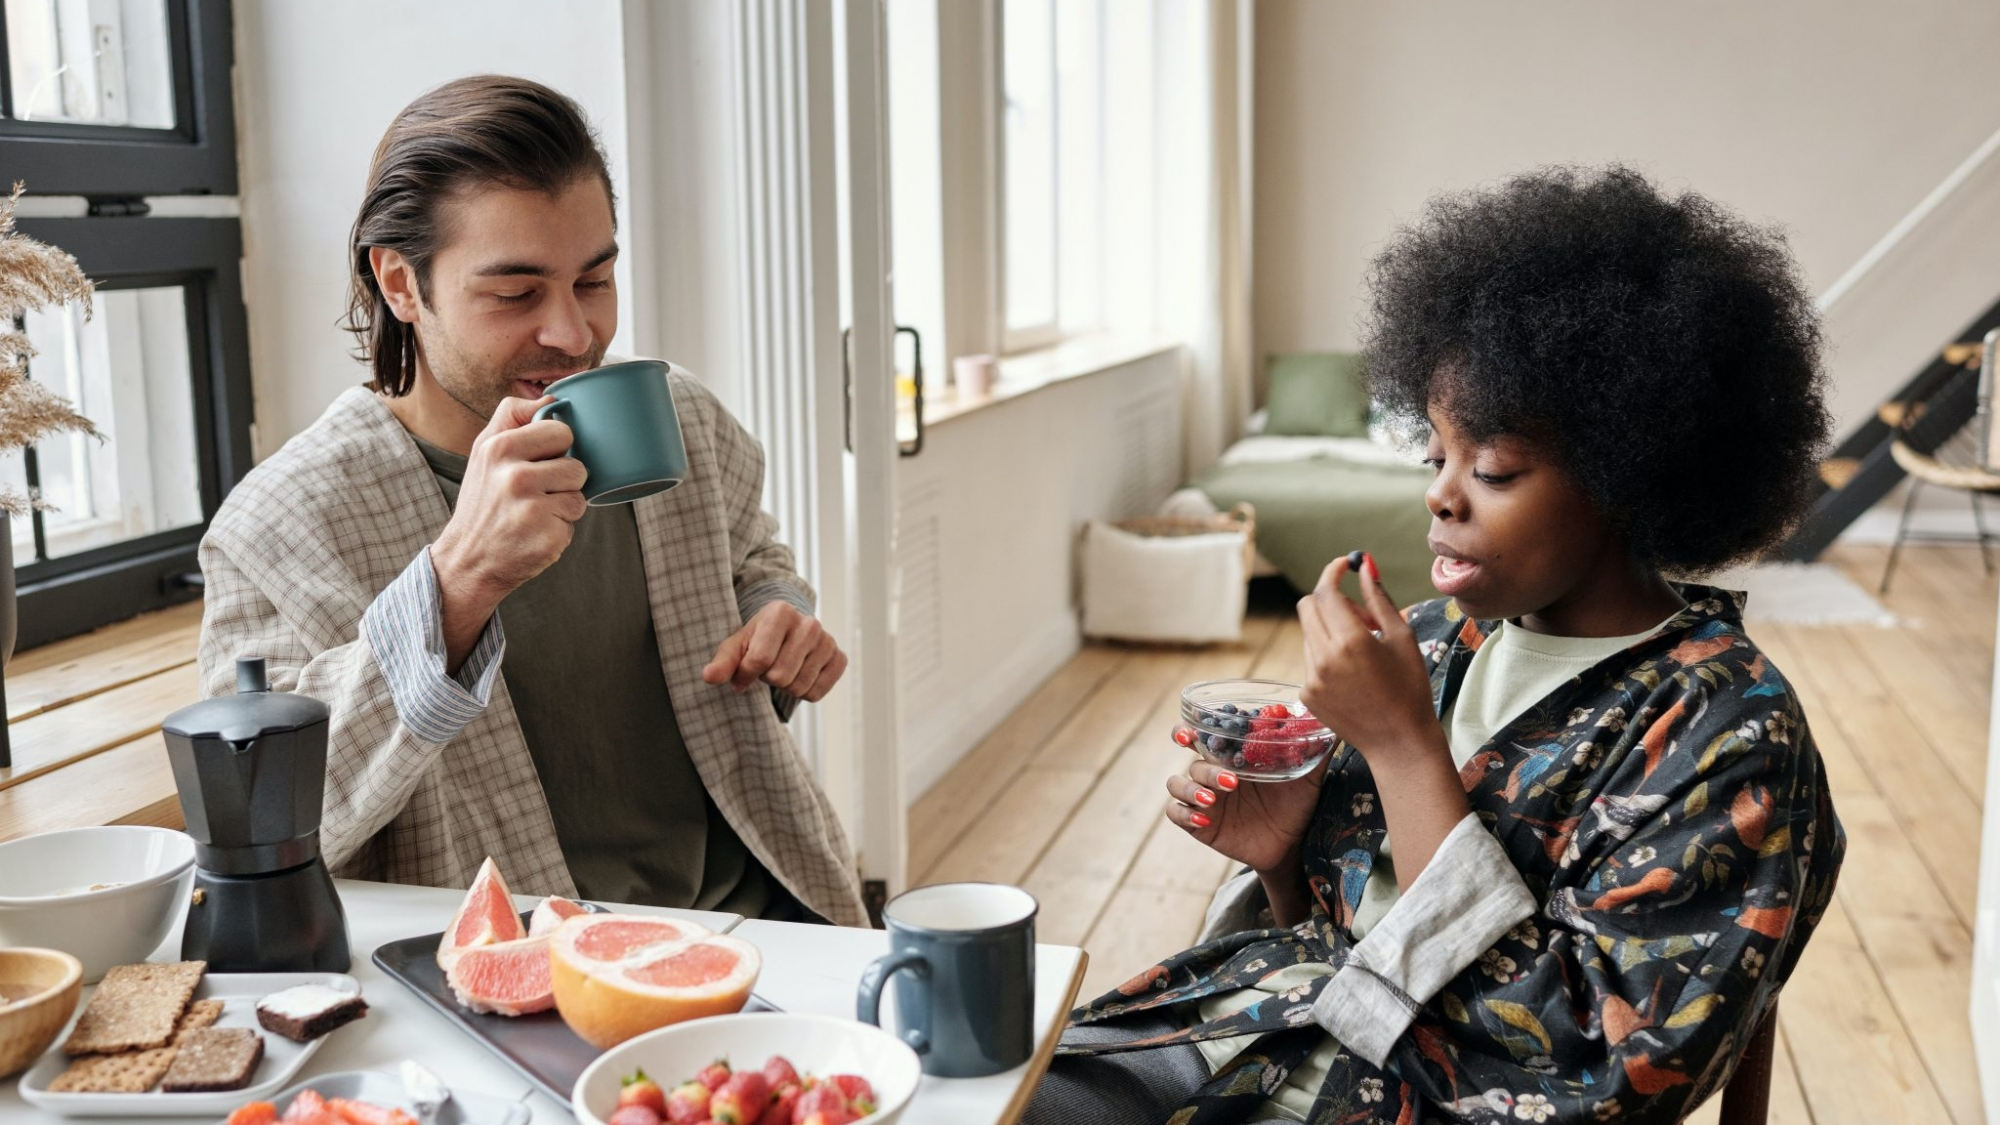 man-and-woman-having-breakfast-4045928pexels-scaled-1